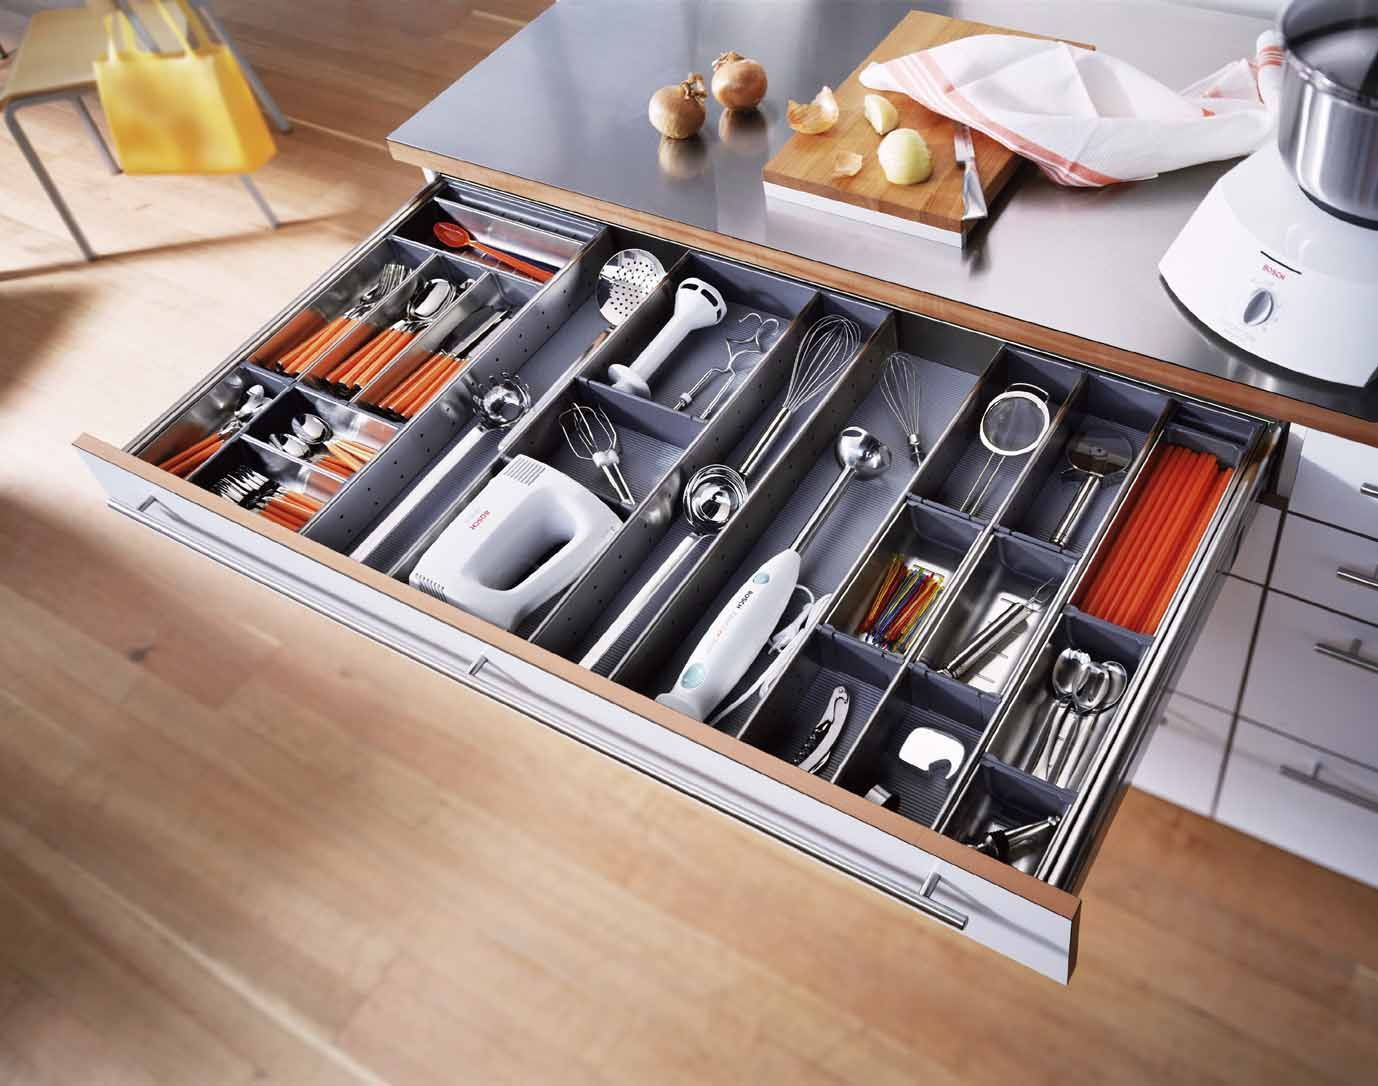 Top drawers often store silverware, utensils and more. With ORGA ...